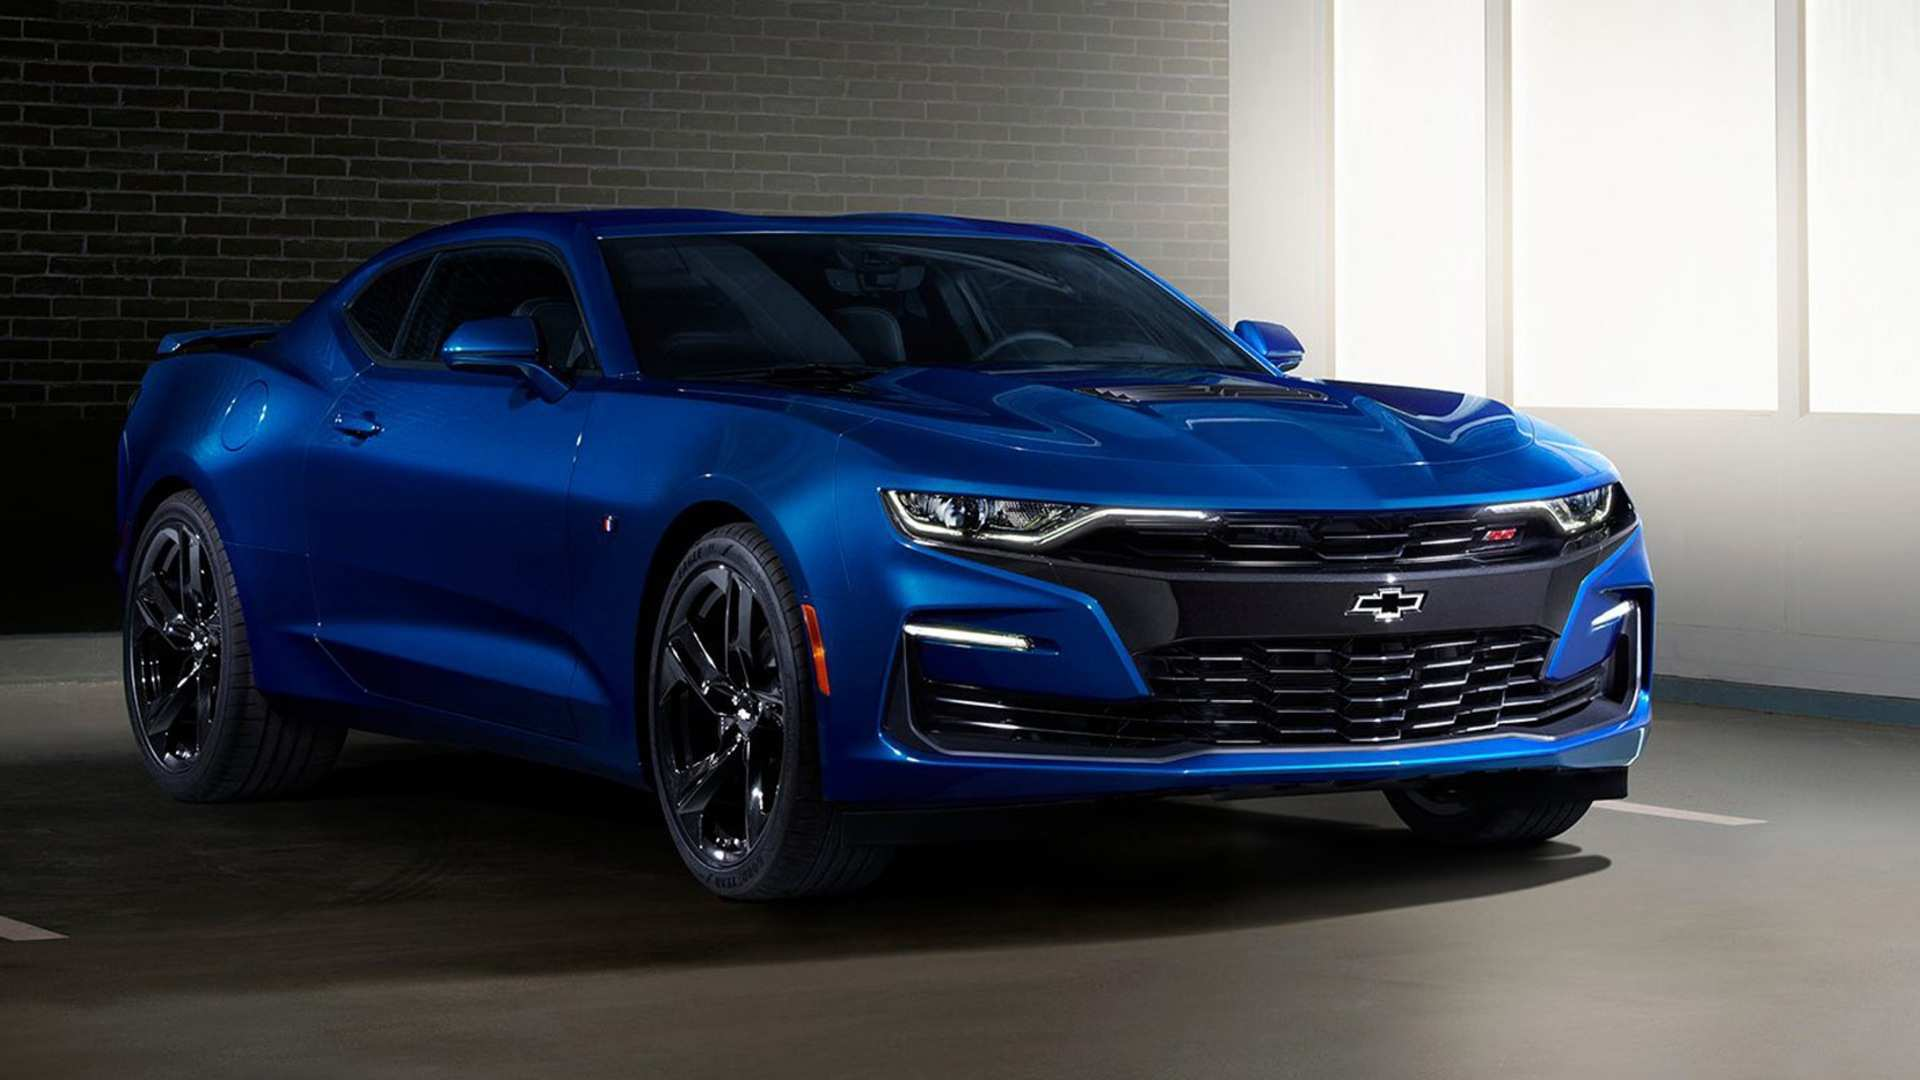 46 Best Review Chevrolet Models 2020 New Concept by Chevrolet Models 2020